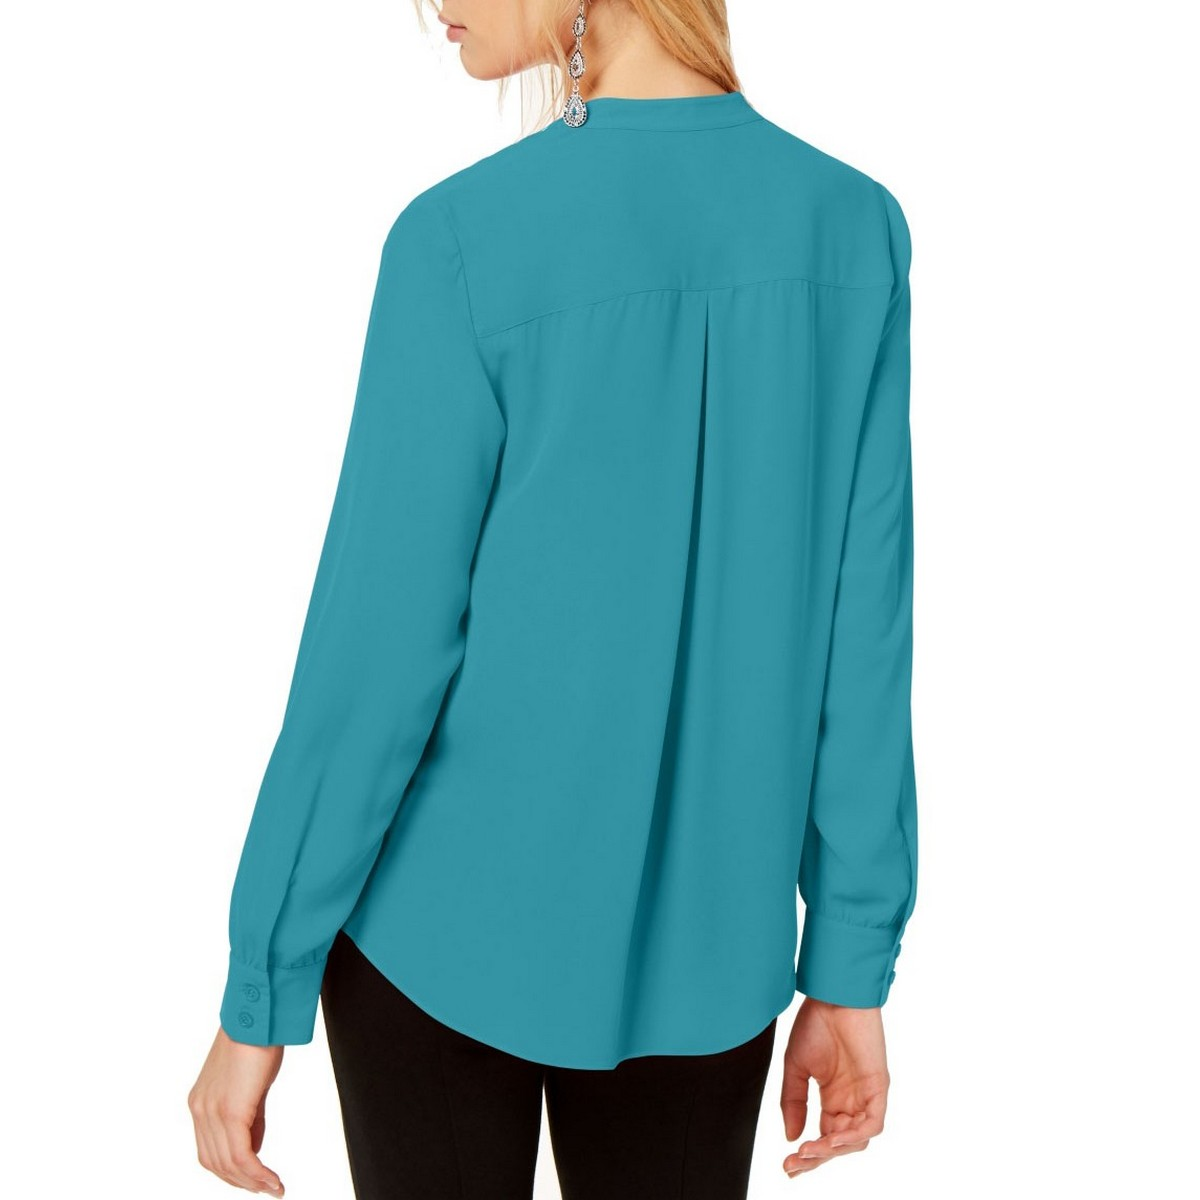 INC-NEW-Women-039-s-Zipper-pocket-Surplice-Blouse-Shirt-Top-TEDO thumbnail 4